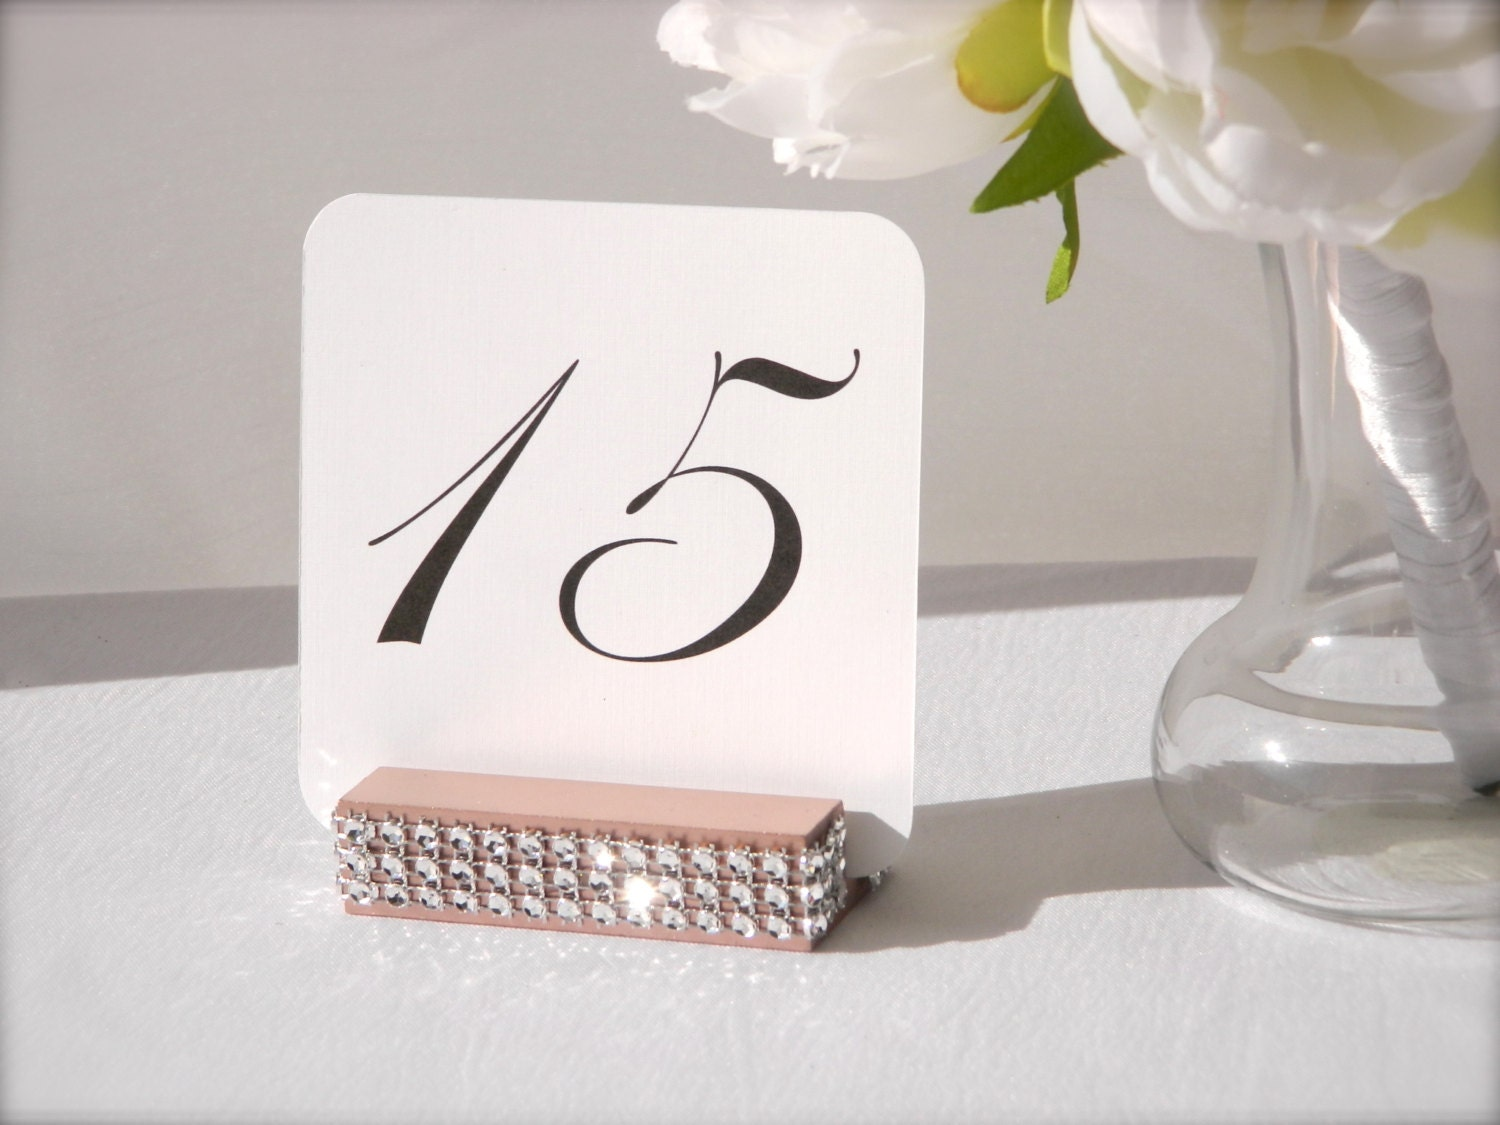 Table number holder rose gold table number holder by for Table number holders